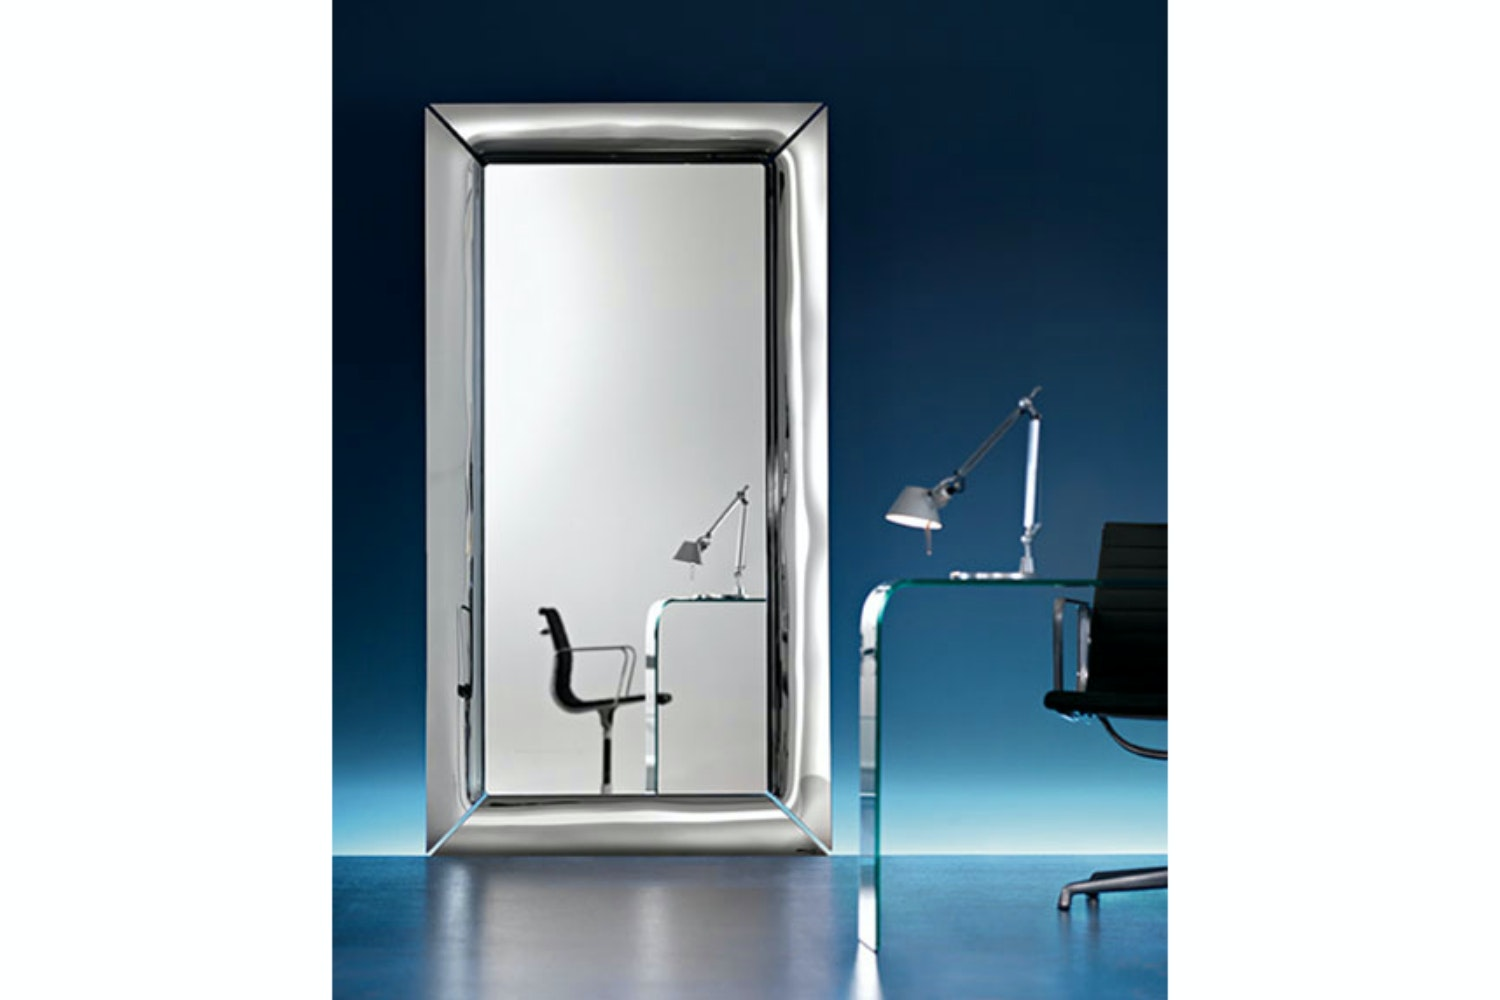 Caadre Standing Mirror 105x195cm in Titanium by Philippe Starck for Fiam Italia